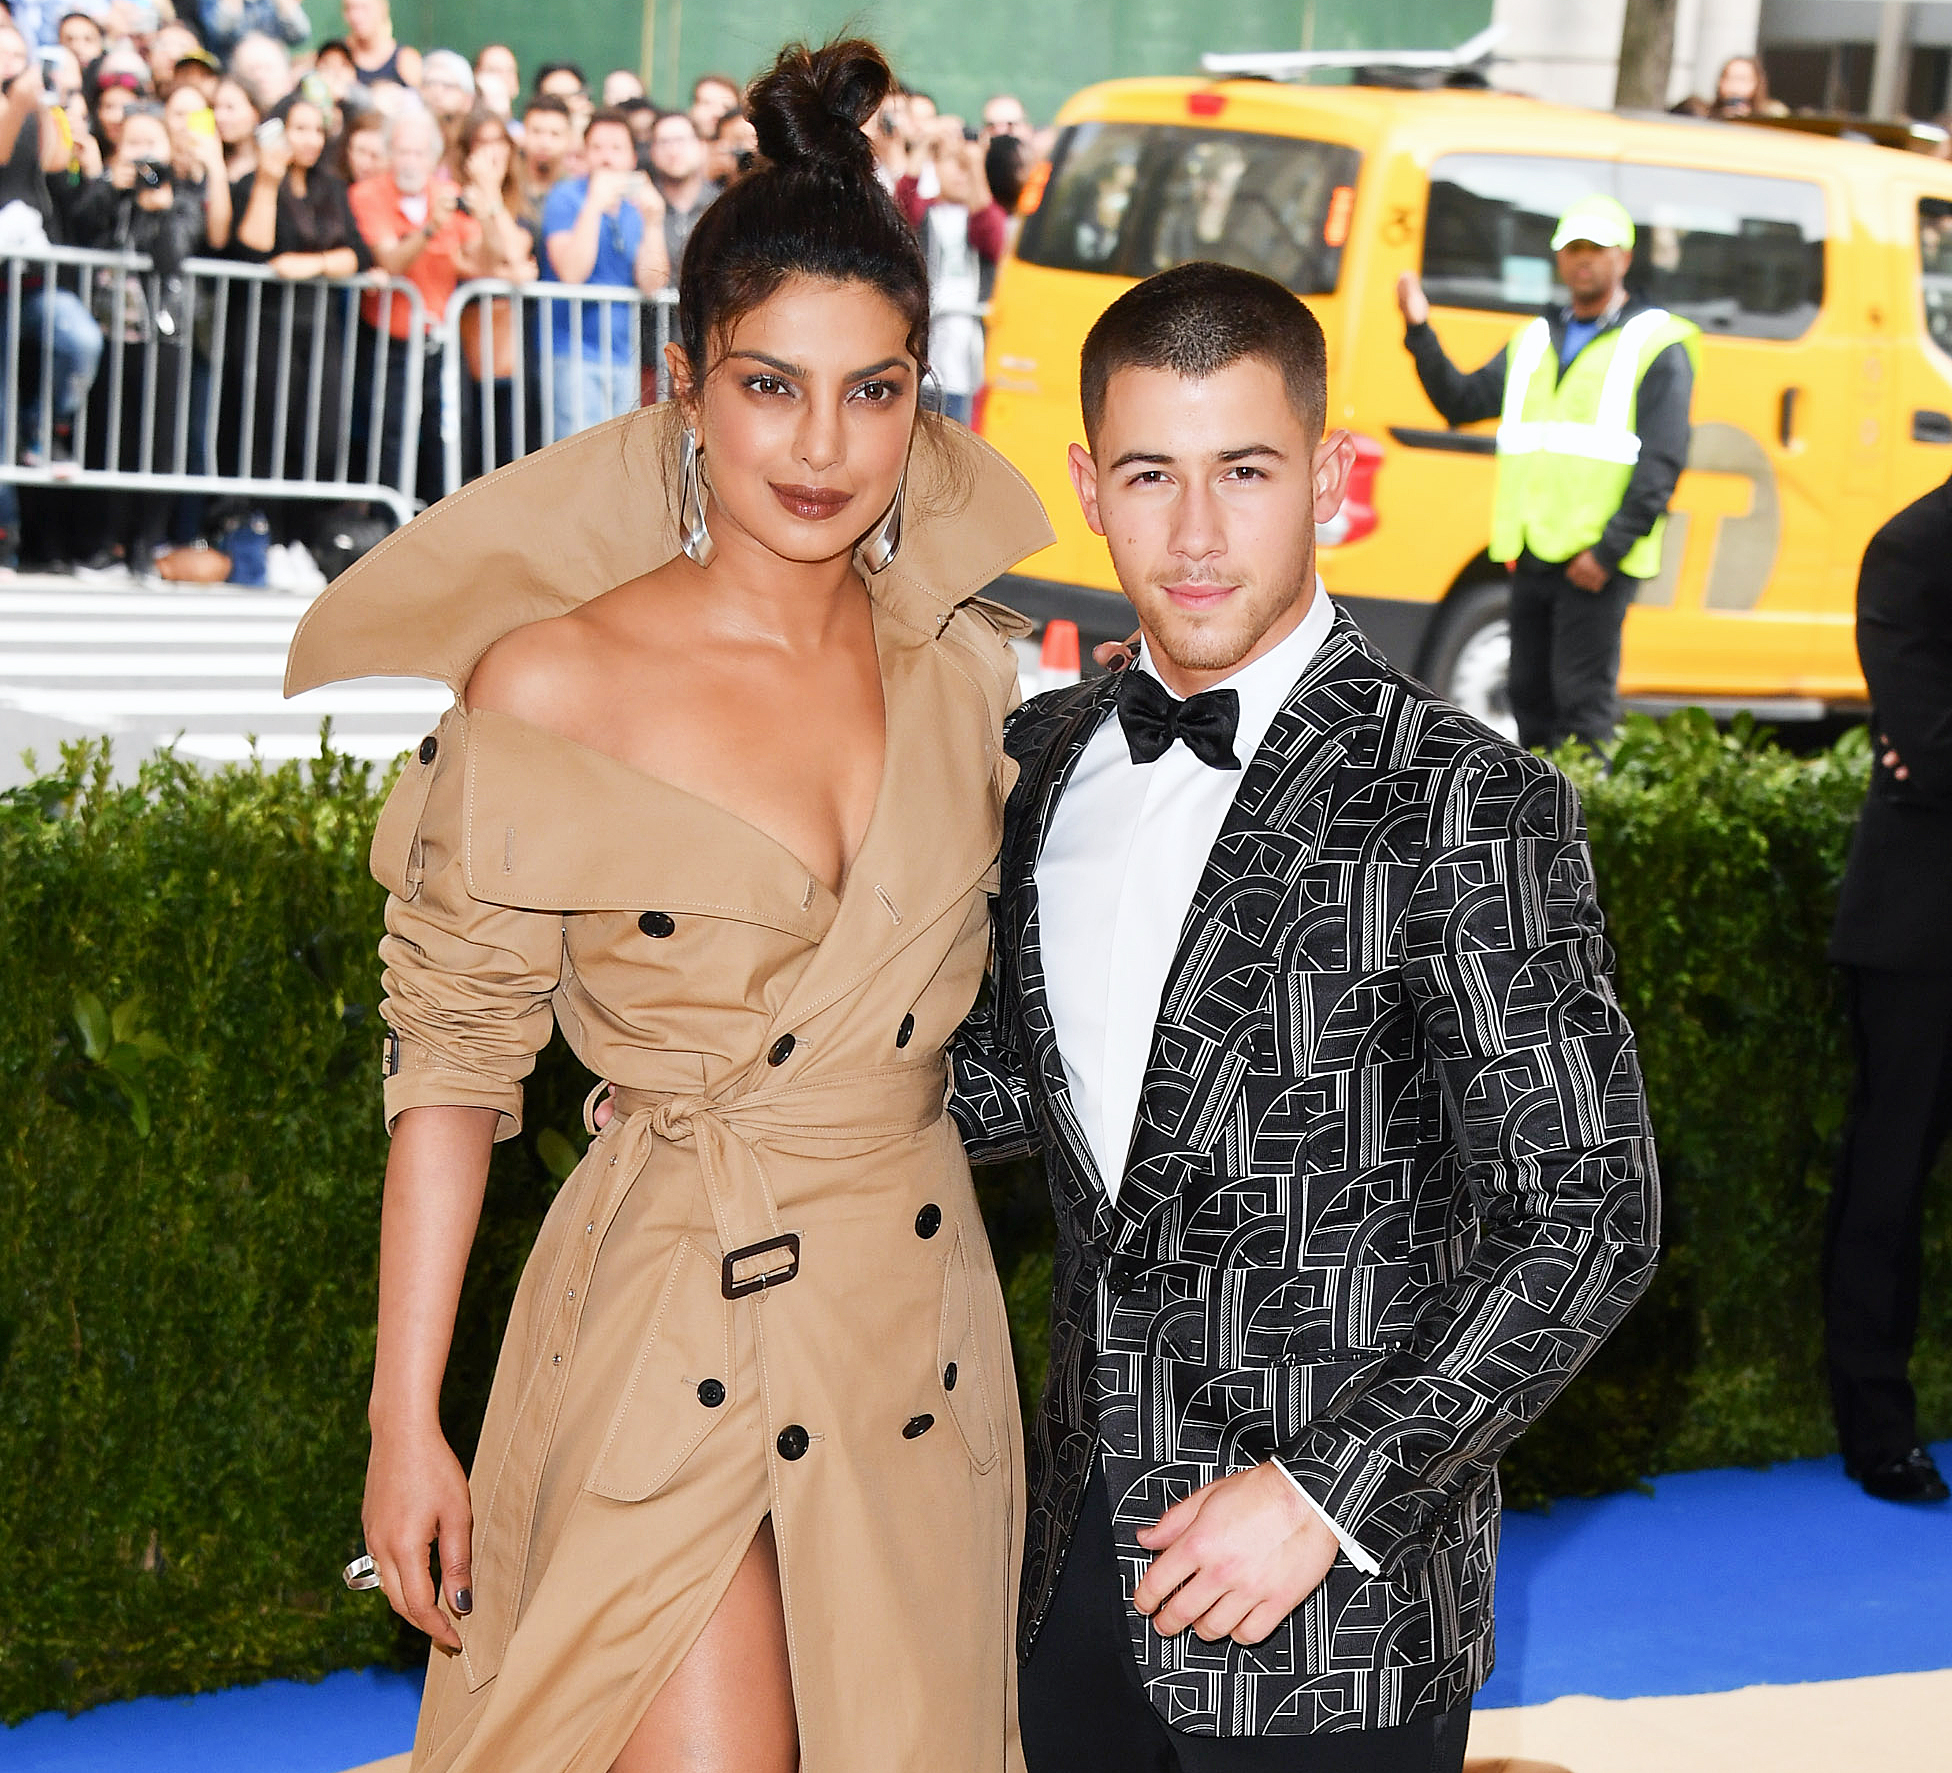 Priyanka Chopra and Nick Jonas in a Relationship? Read Details